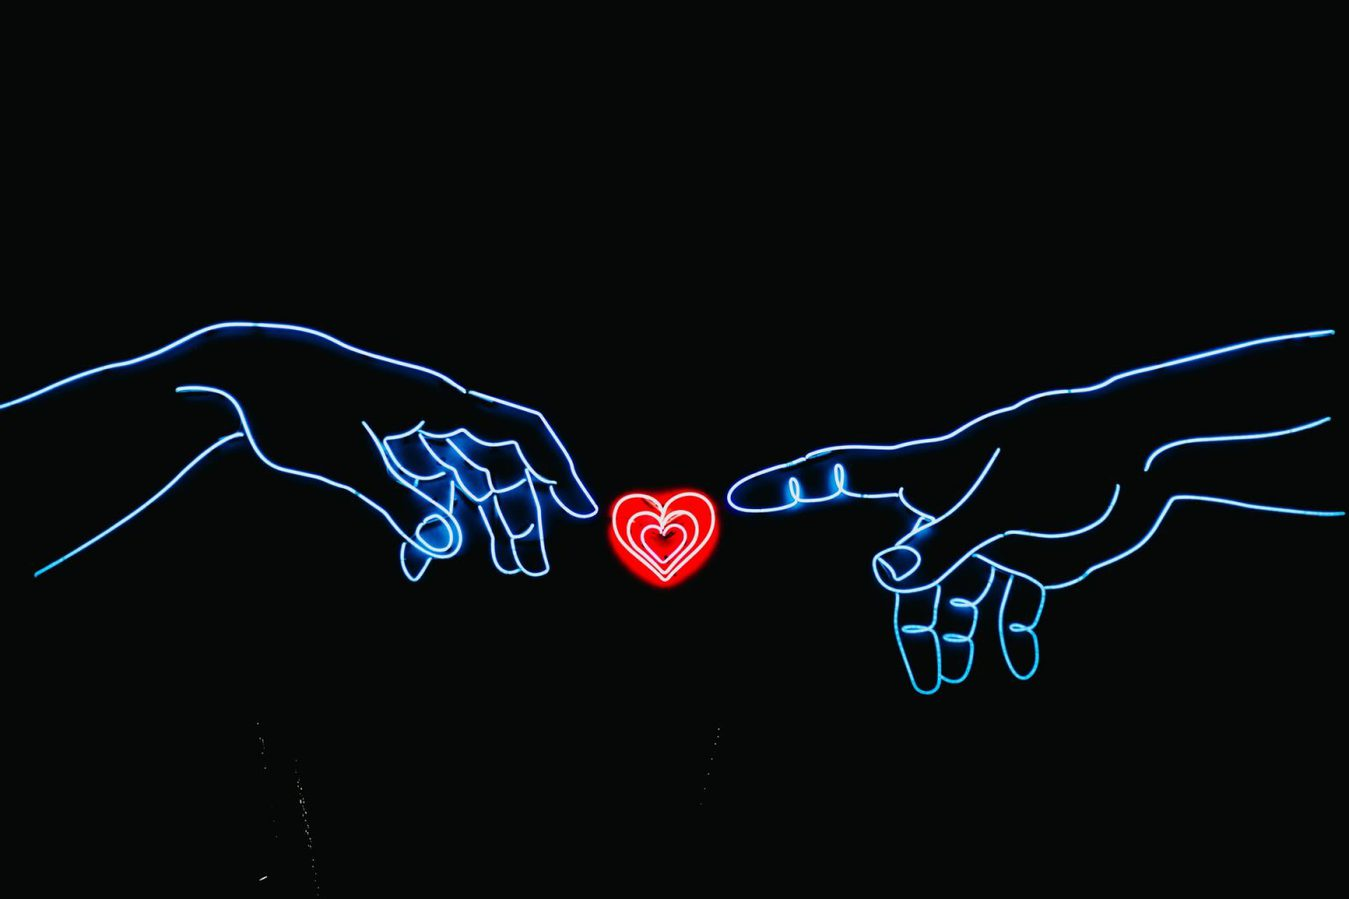 Neon sign two hands and heart